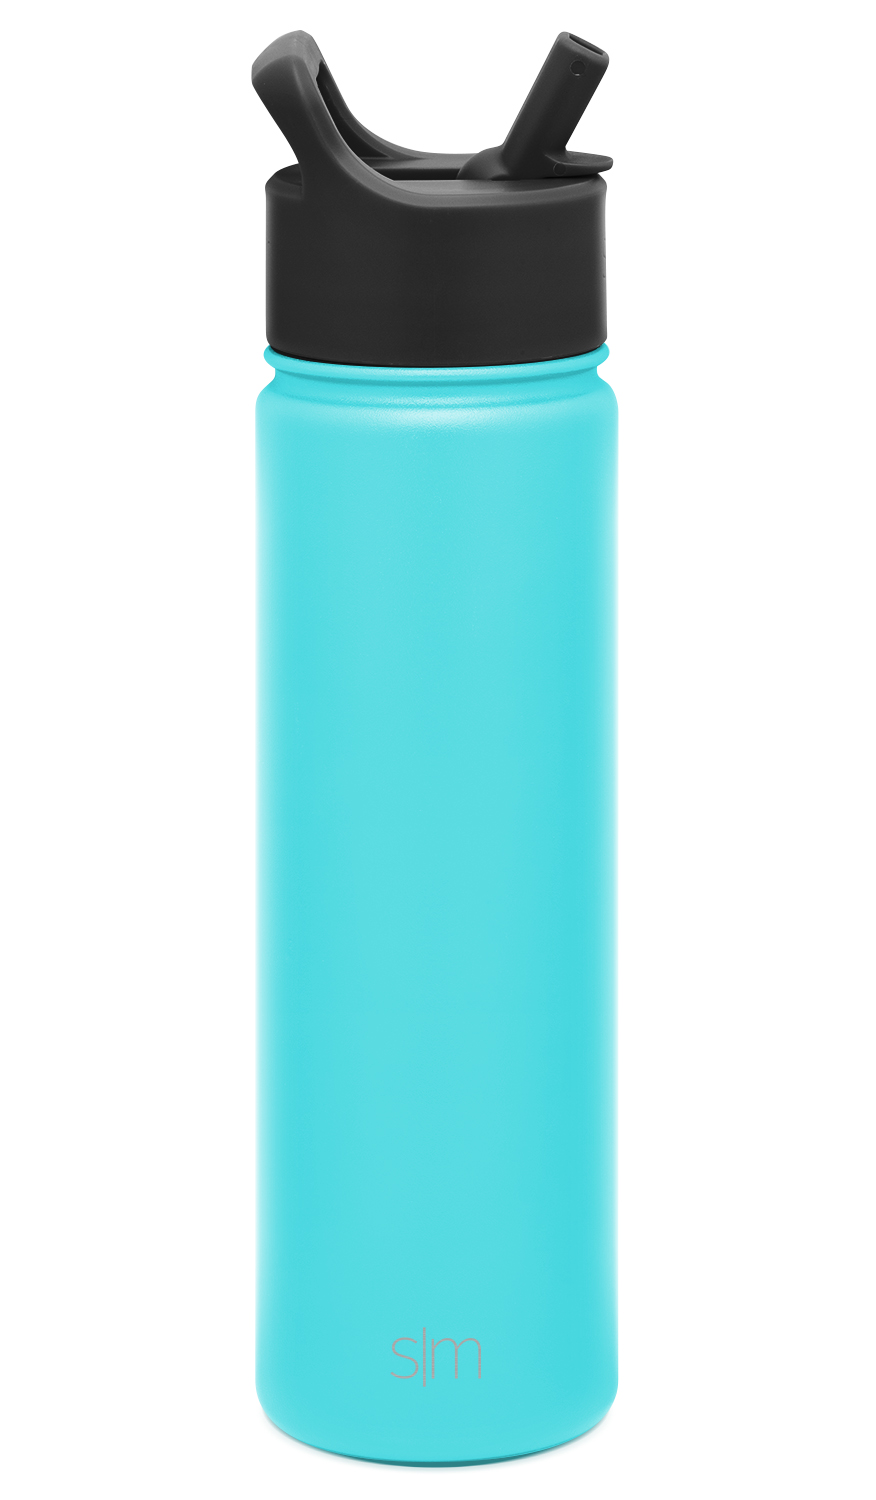 Simple-Modern-Summit-Water-Bottle-with-Straw-Lid-Vacuum-Insulated-Kid-039-s-Cup thumbnail 100